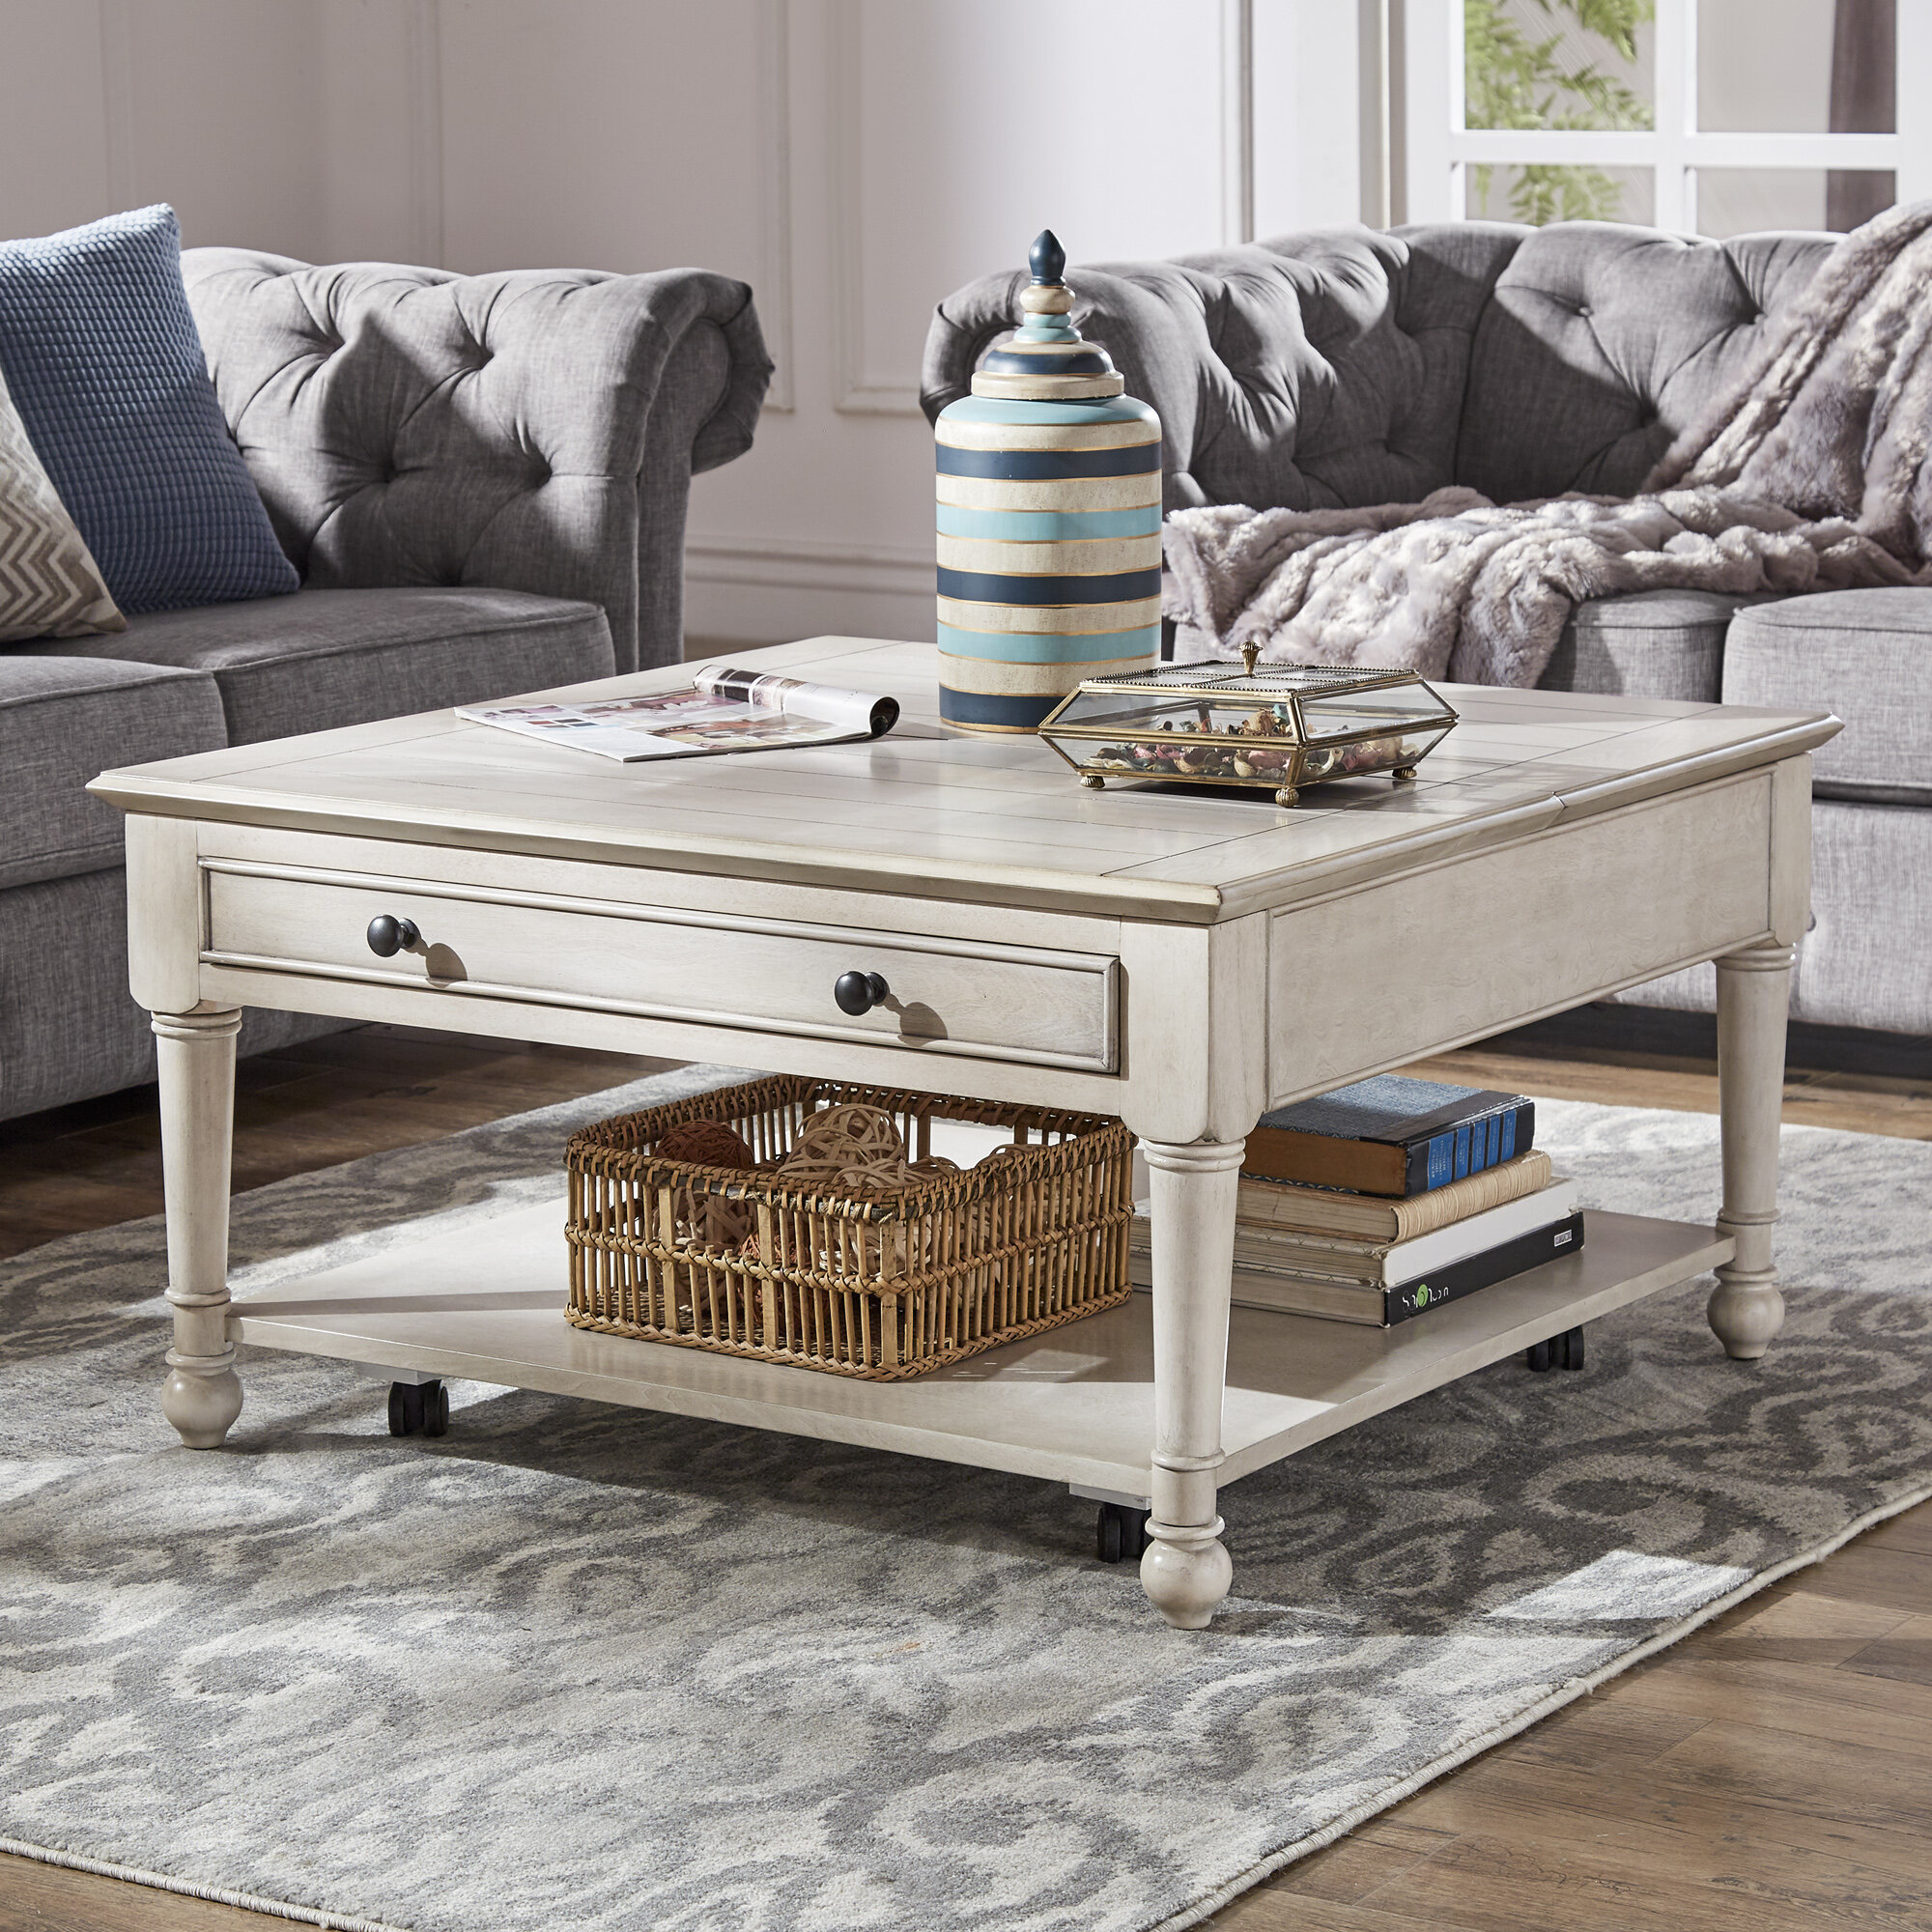 Lift Top Square Mirrored Coffee Tables You Ll Love In 2021 Wayfair